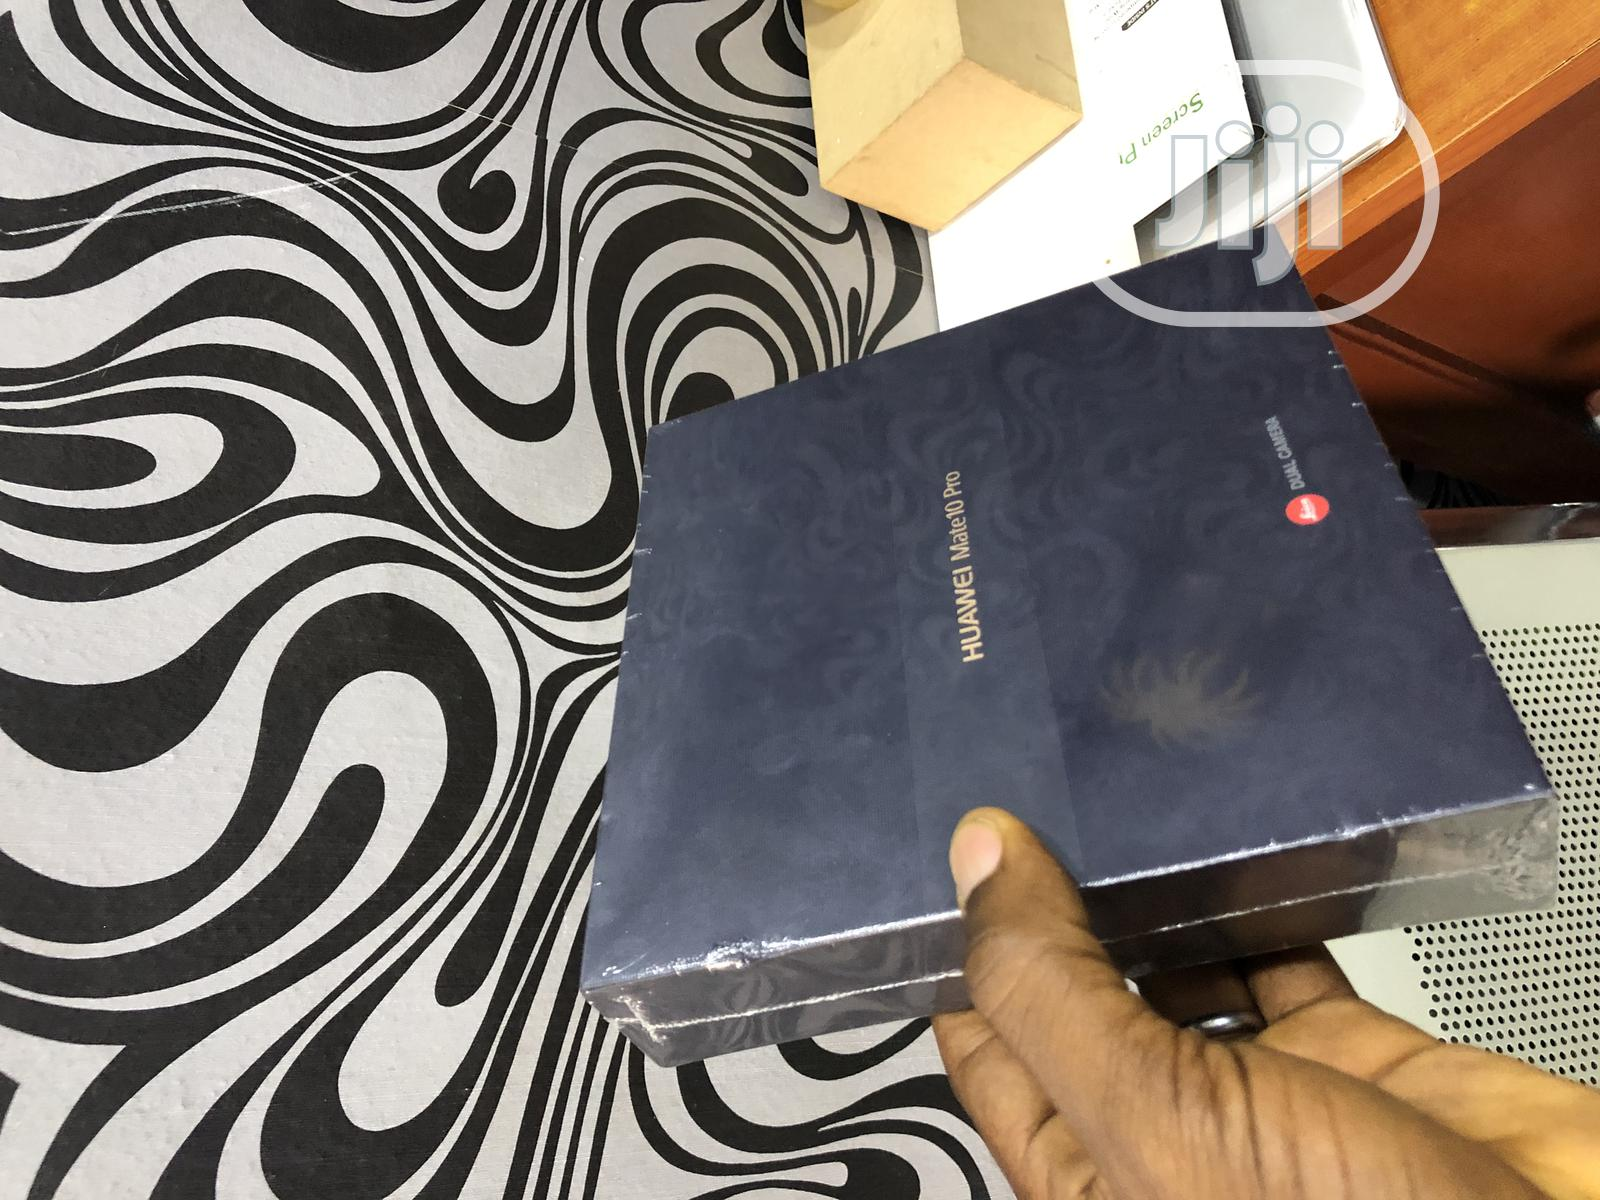 New Huawei Mate 10 Pro 128 GB Gray | Mobile Phones for sale in Ikeja, Lagos State, Nigeria